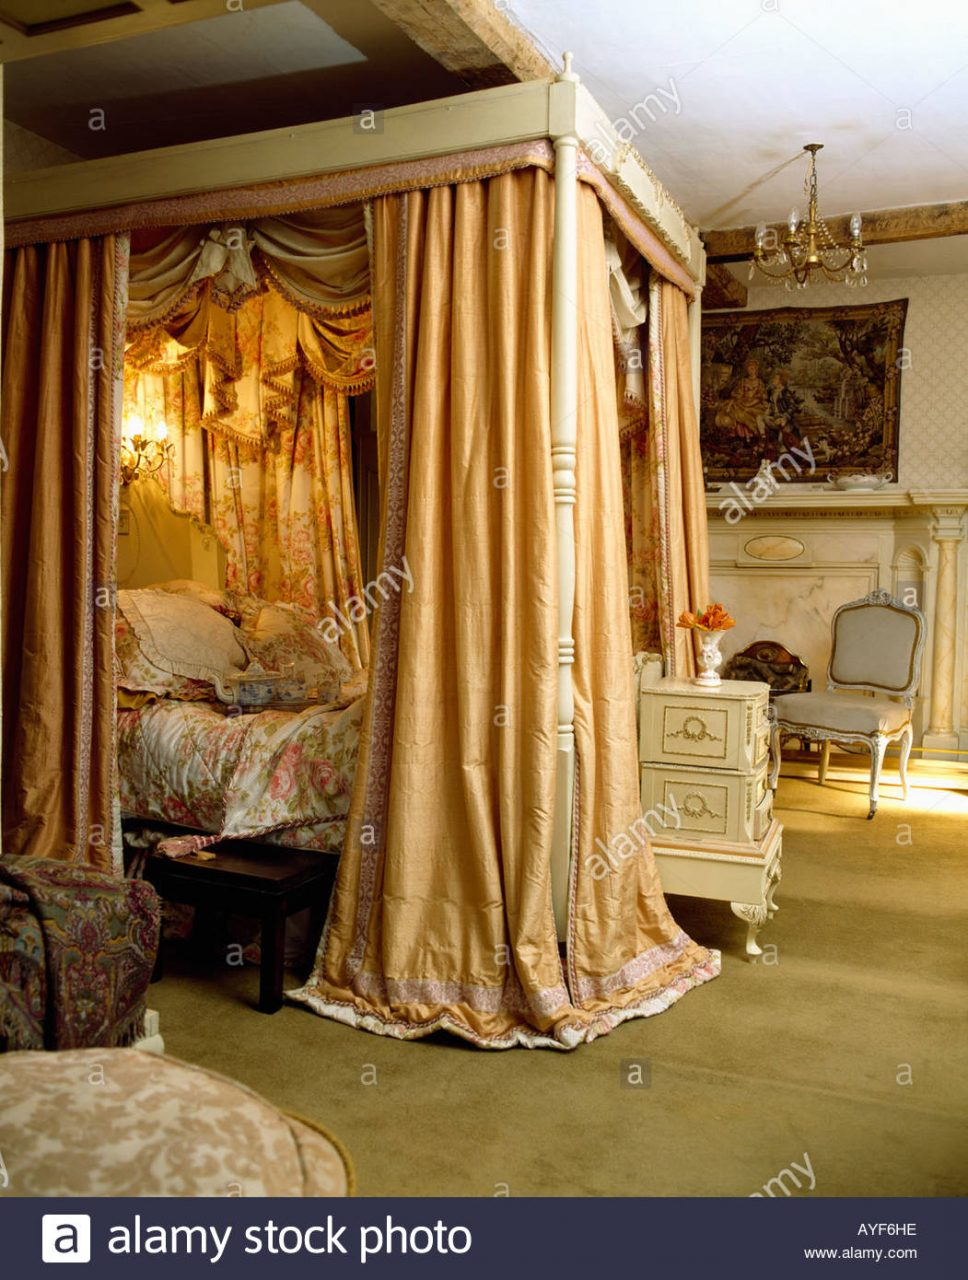 Four Poster Bed With Silk Curtains And Integral Lighting Stock Photo